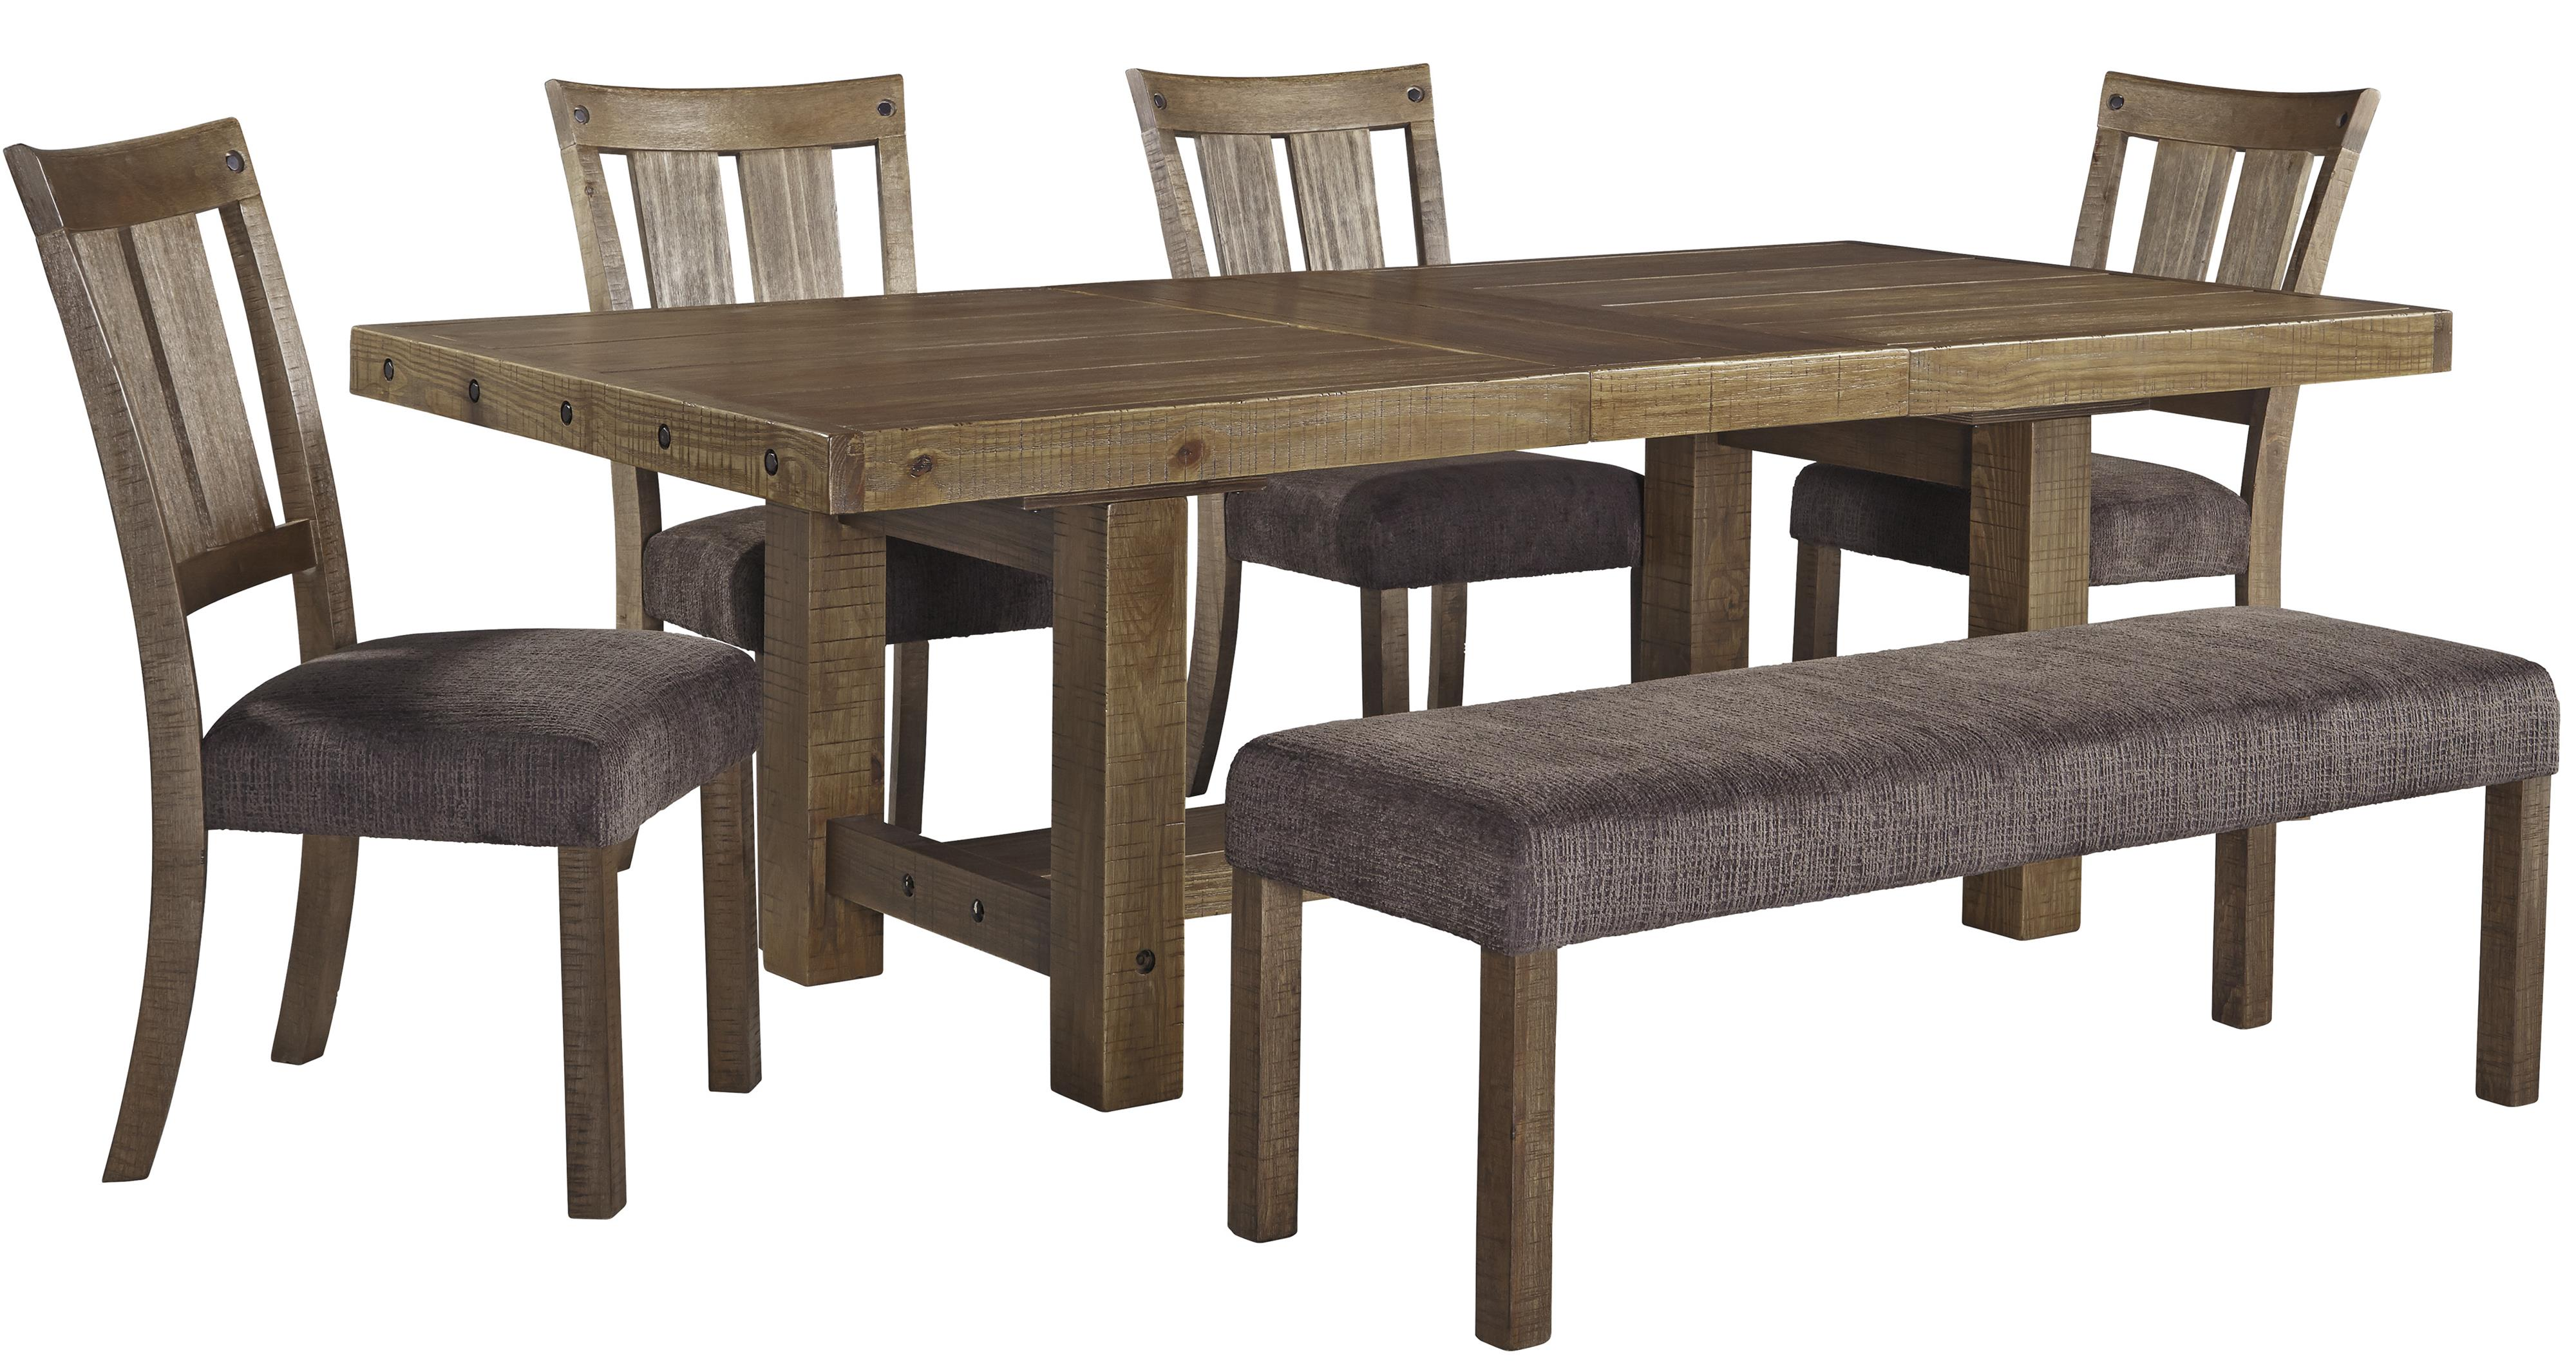 Signature Design by Ashley Tamilo 6 Piece Table & Chair Set with Bench - Item Number: D714-45+4x01+00